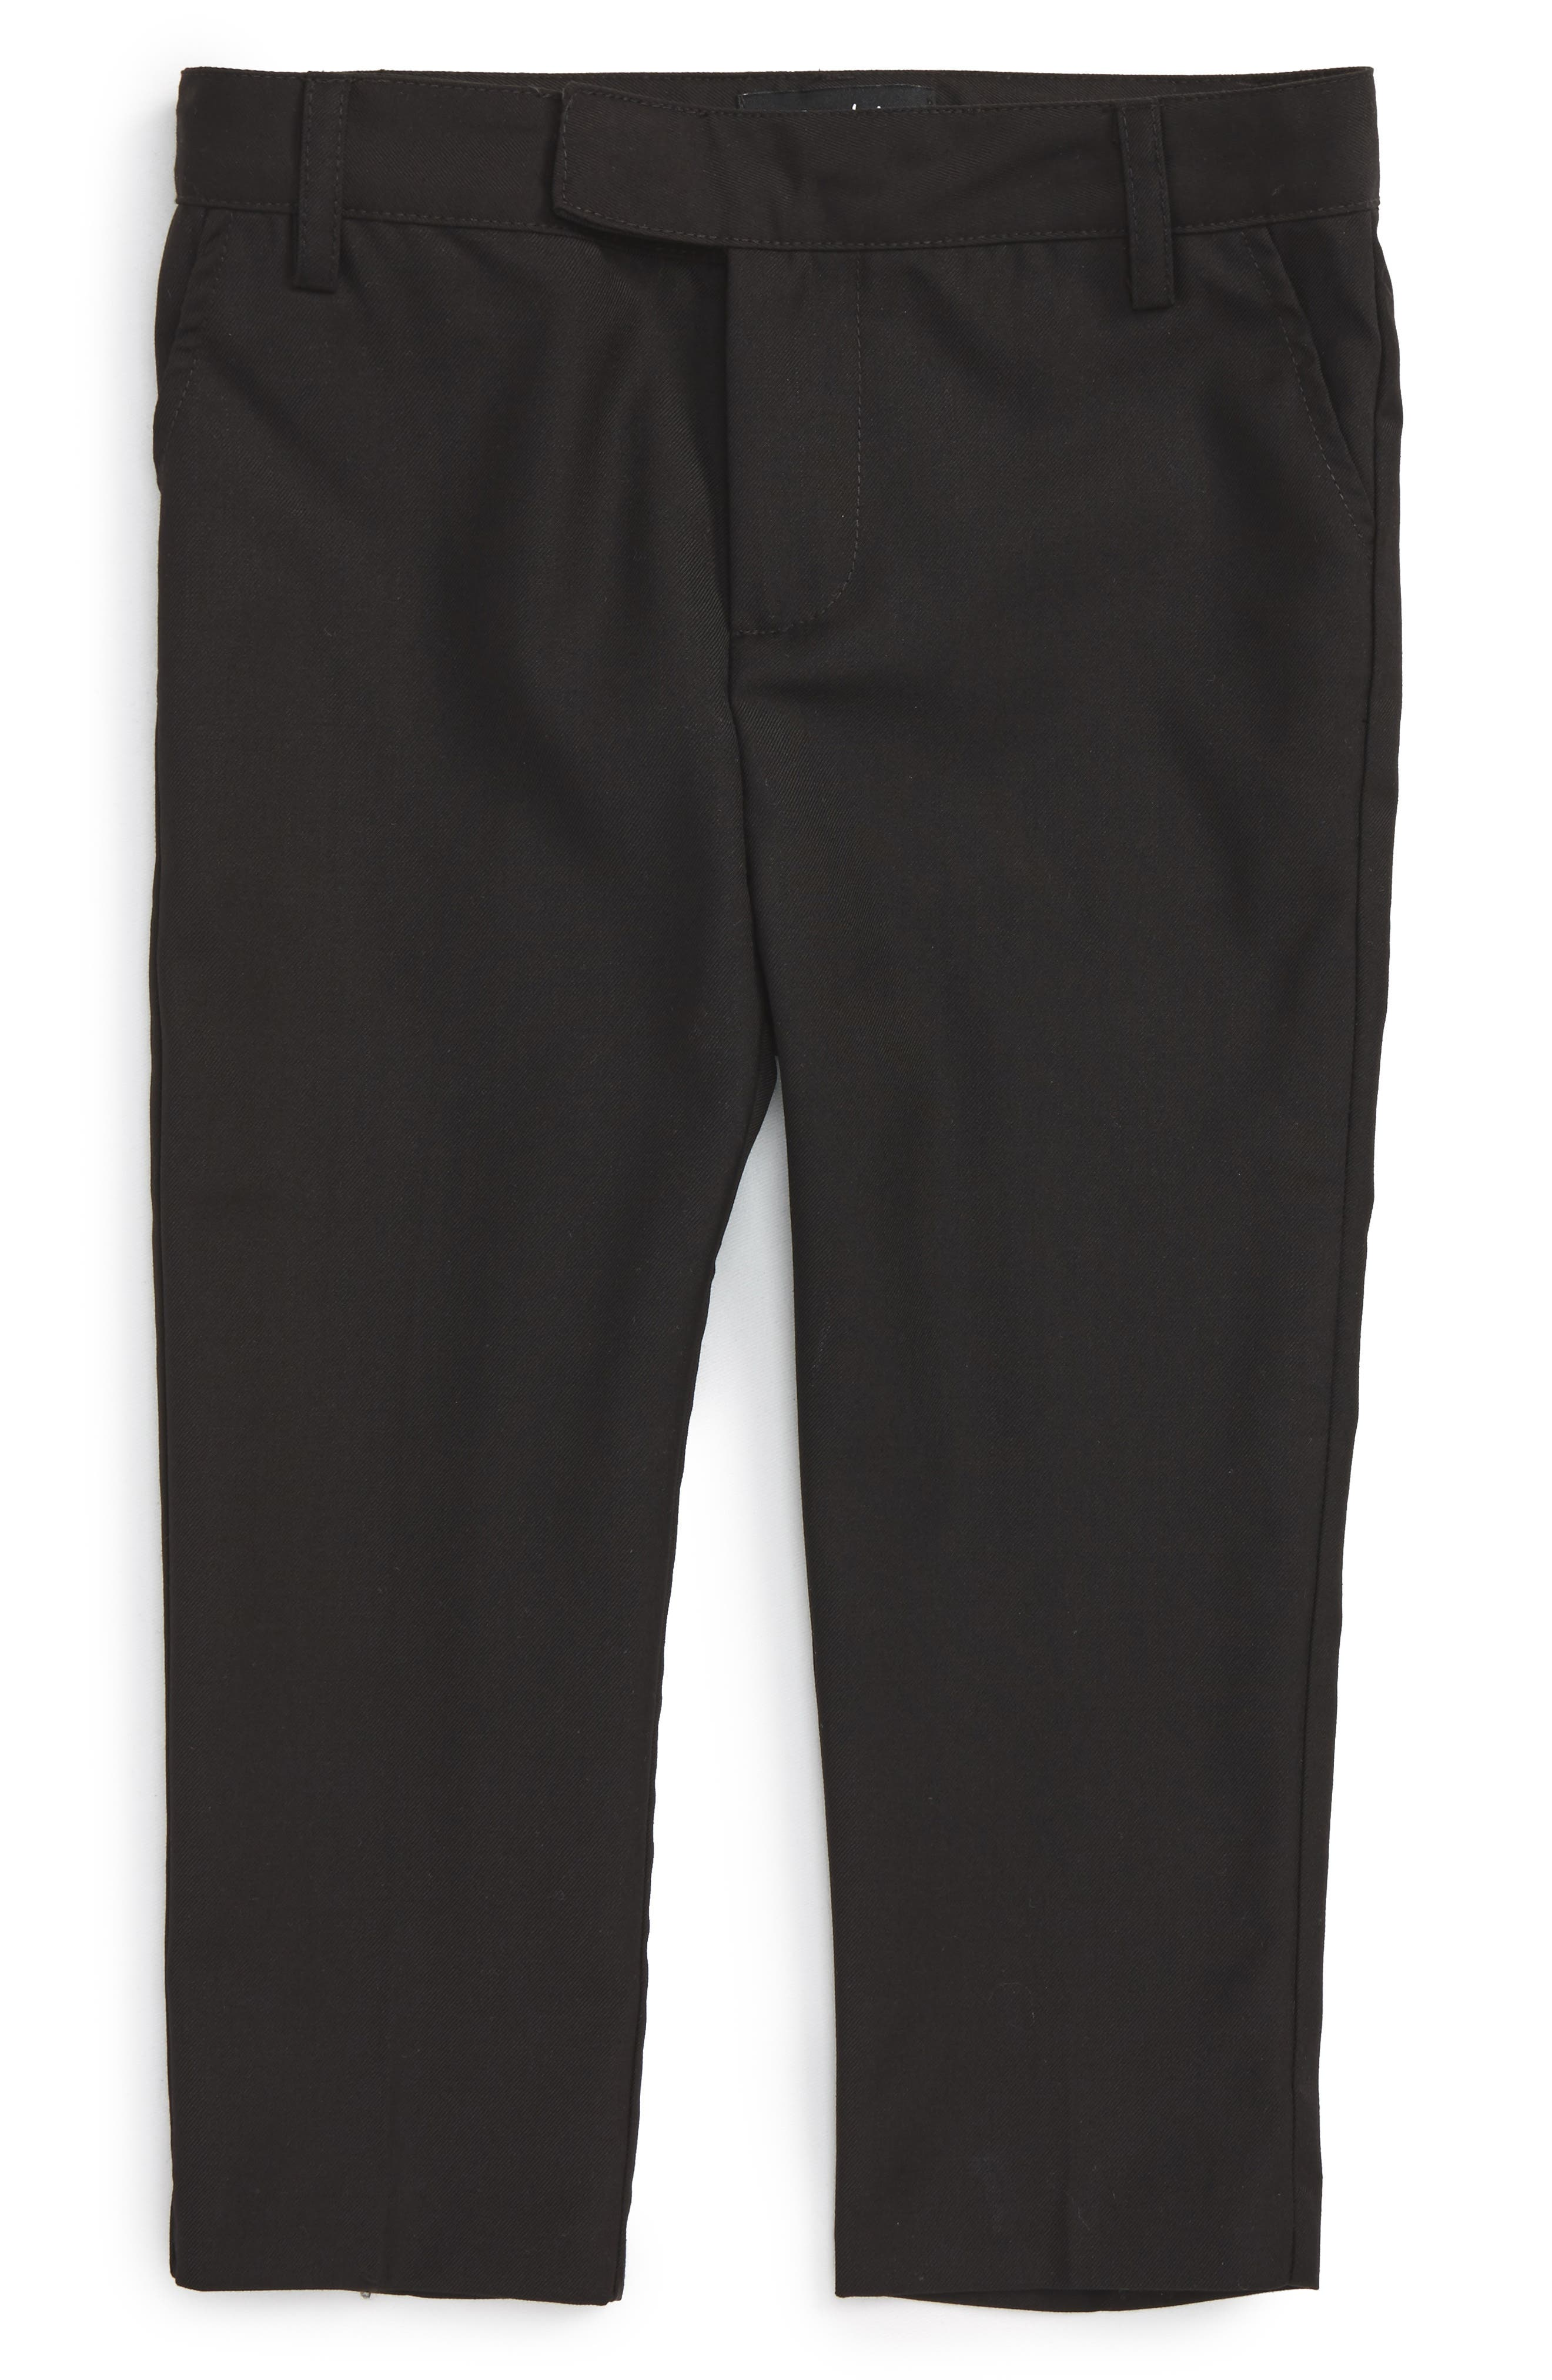 Harry Suit Pants,                             Main thumbnail 1, color,                             Black